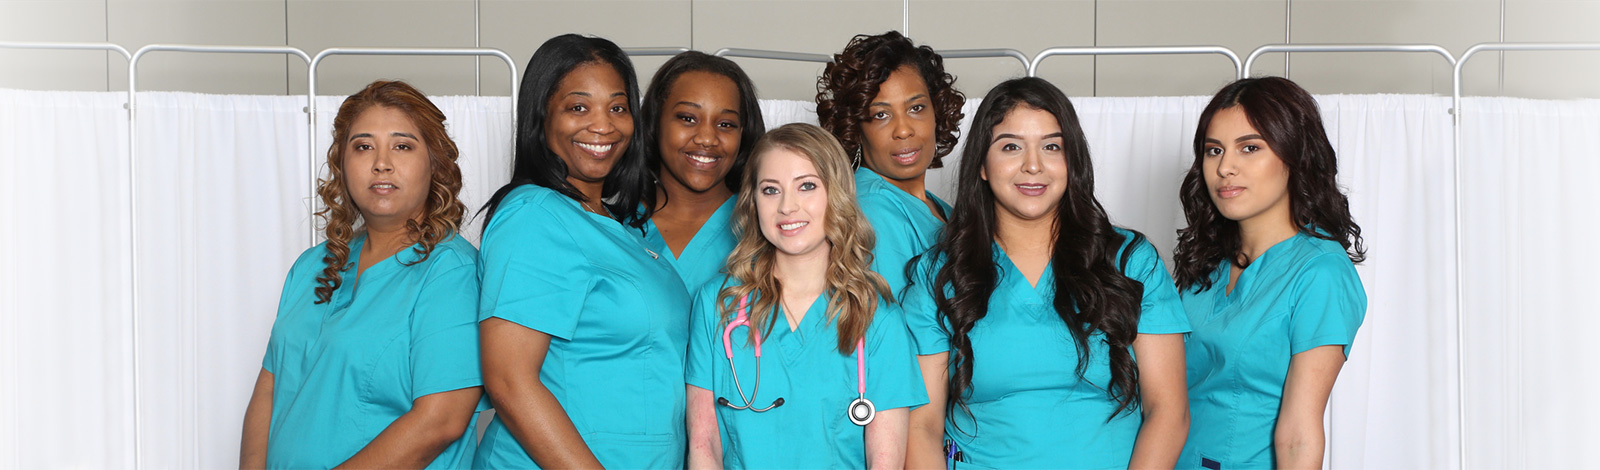 Staff photo of nurses wearing teal scrubs